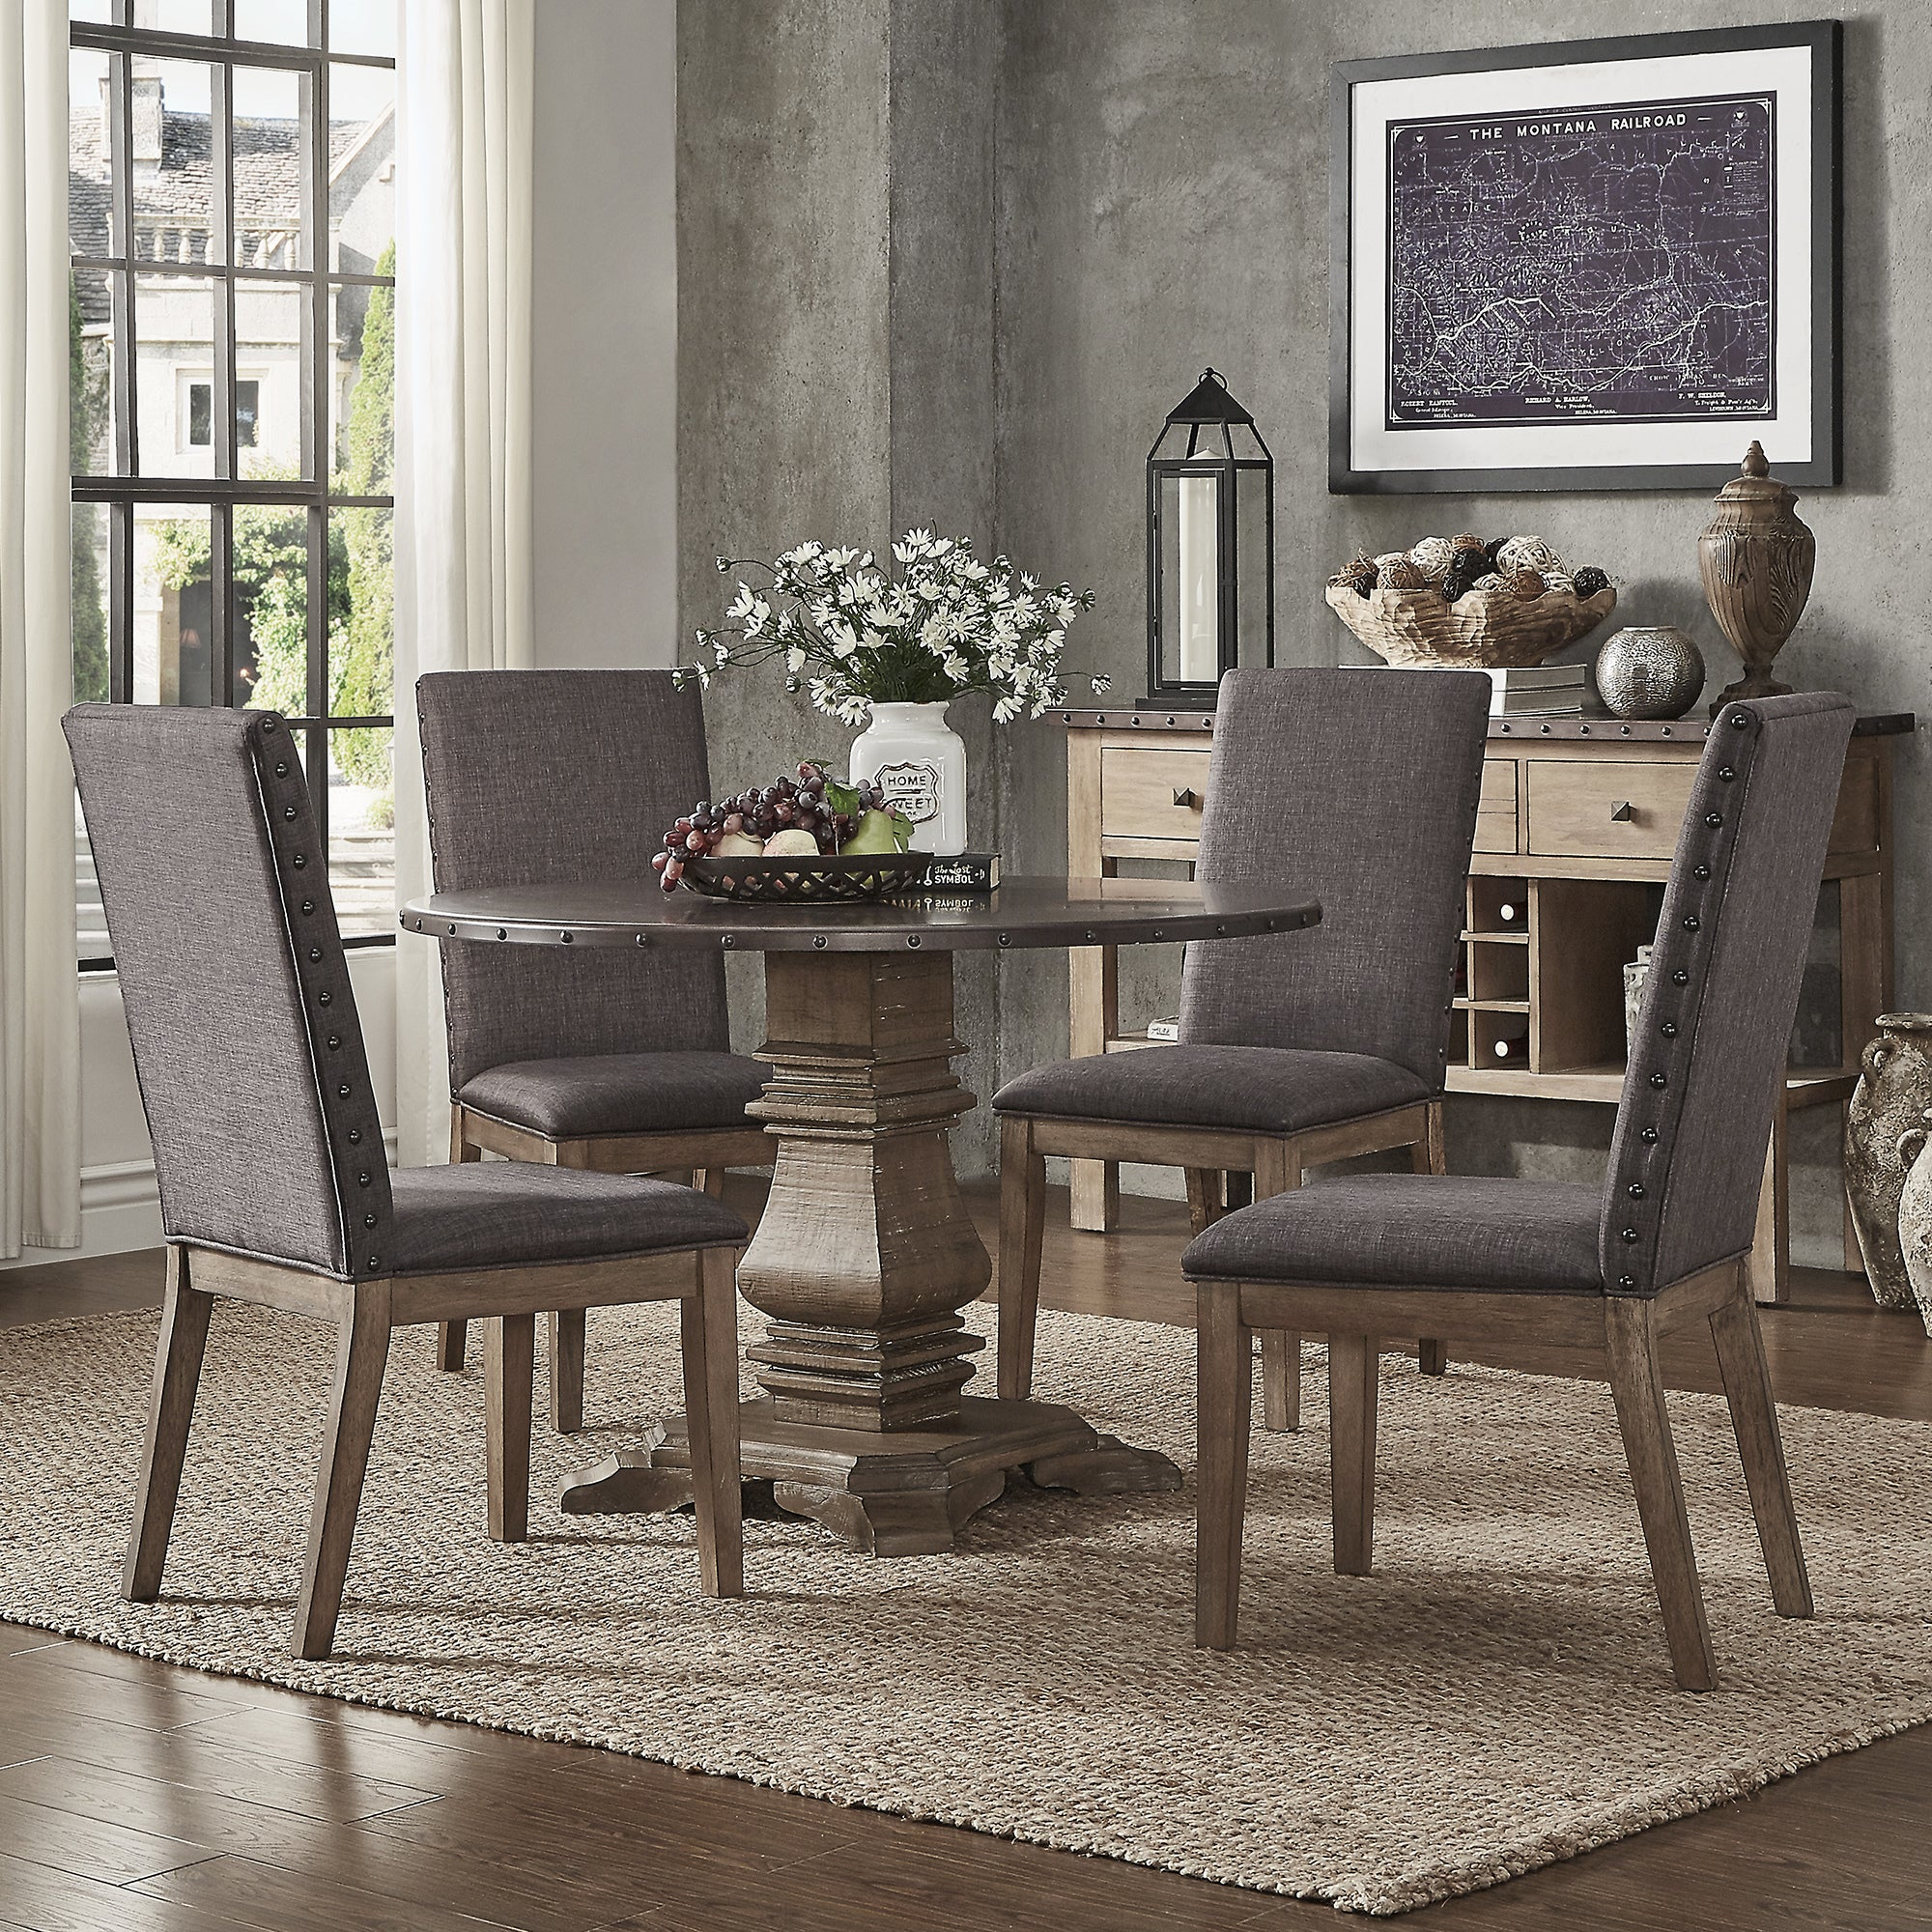 Janelle Round Rustic Zinc Dining Set Parson Chairs